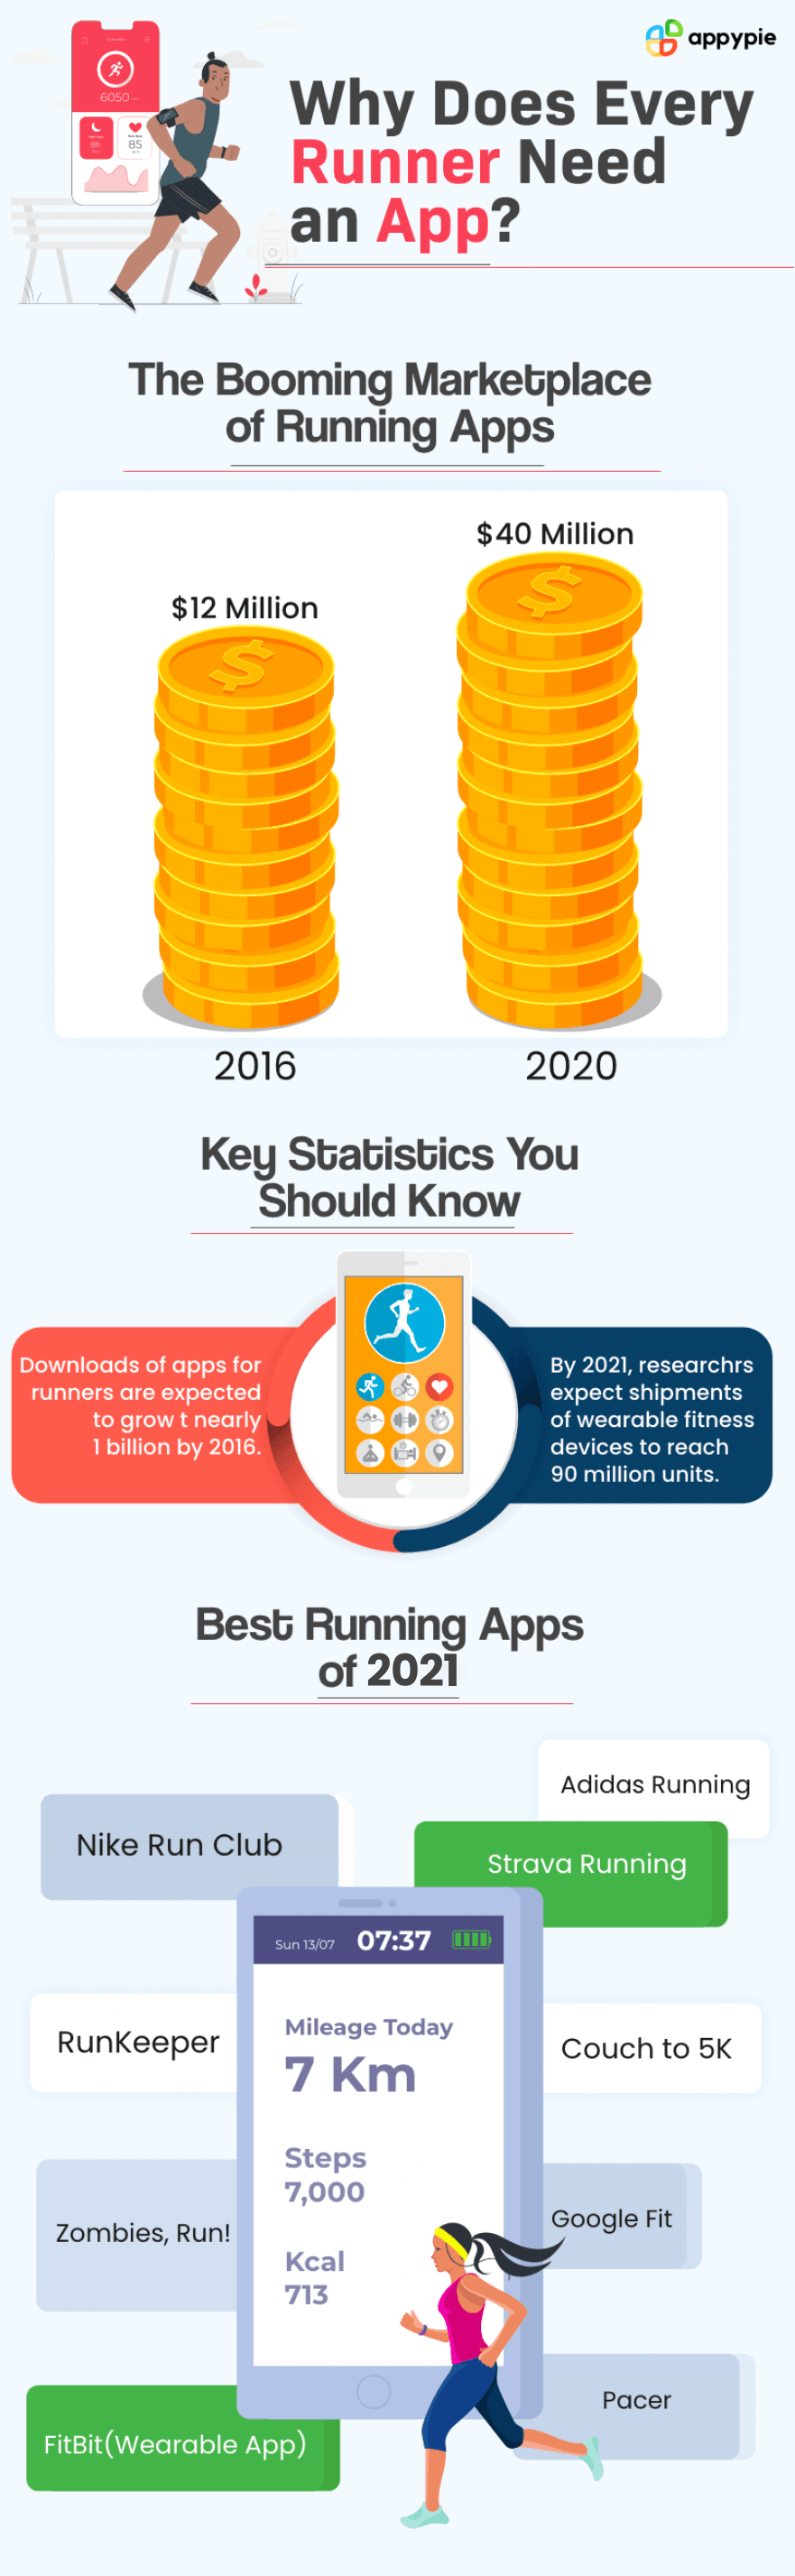 Why Dose every runner need an app - Appy pie